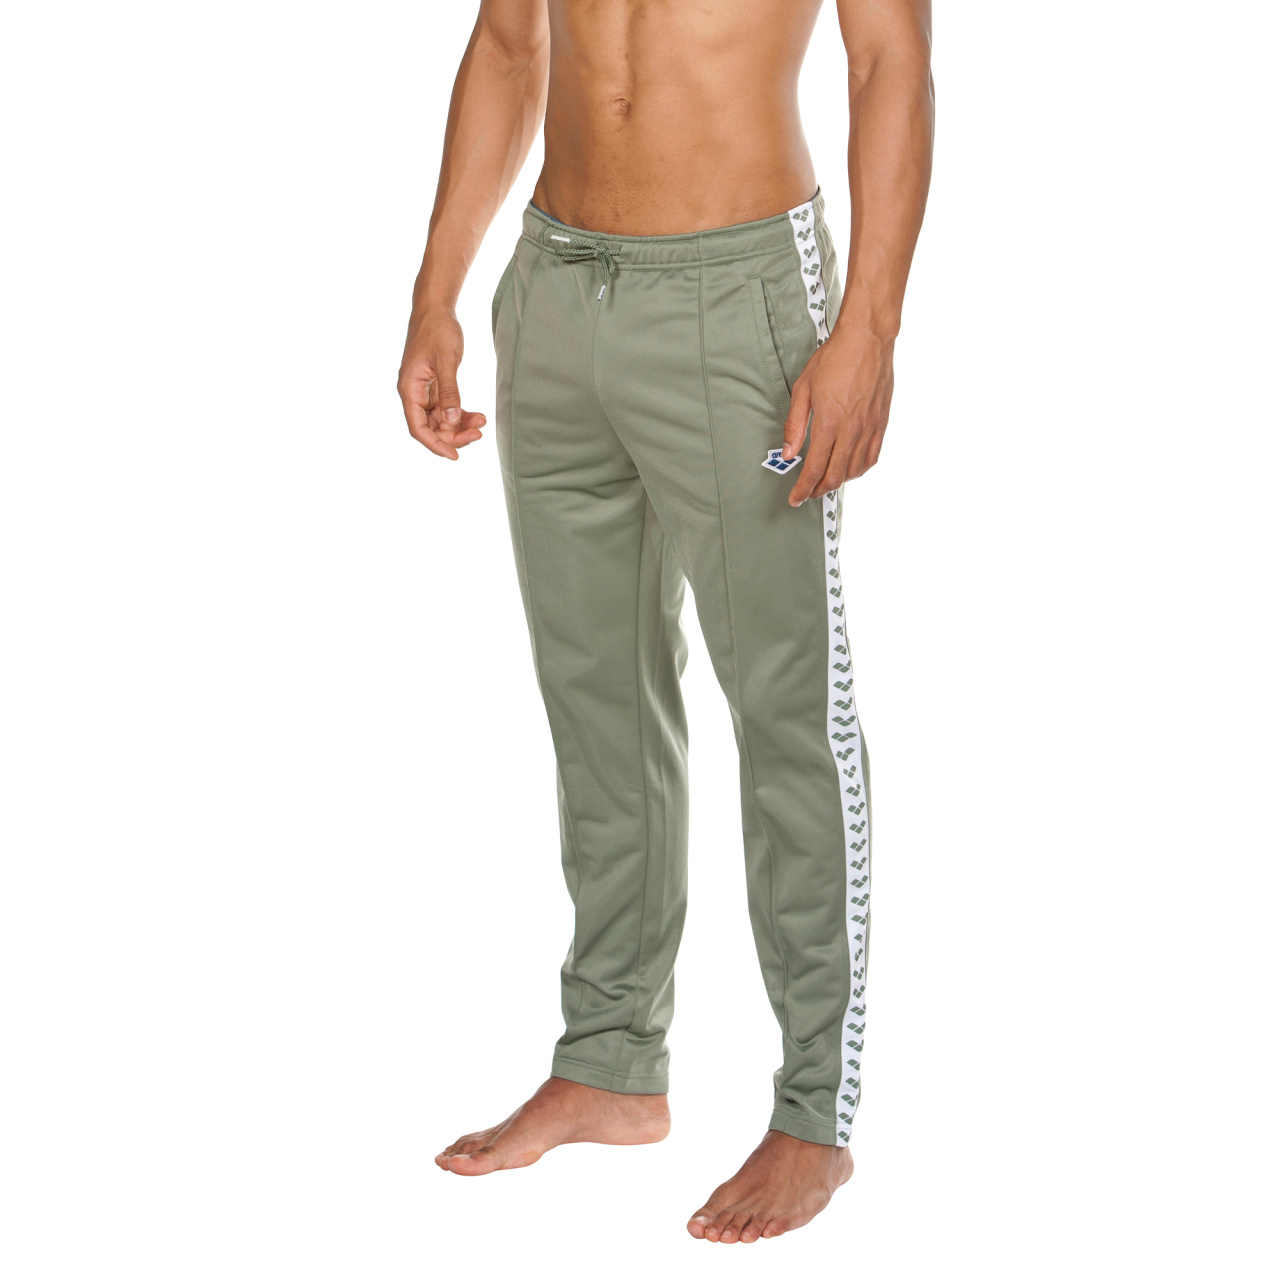 Pants Icons arena para Hombre Relax Team_7047